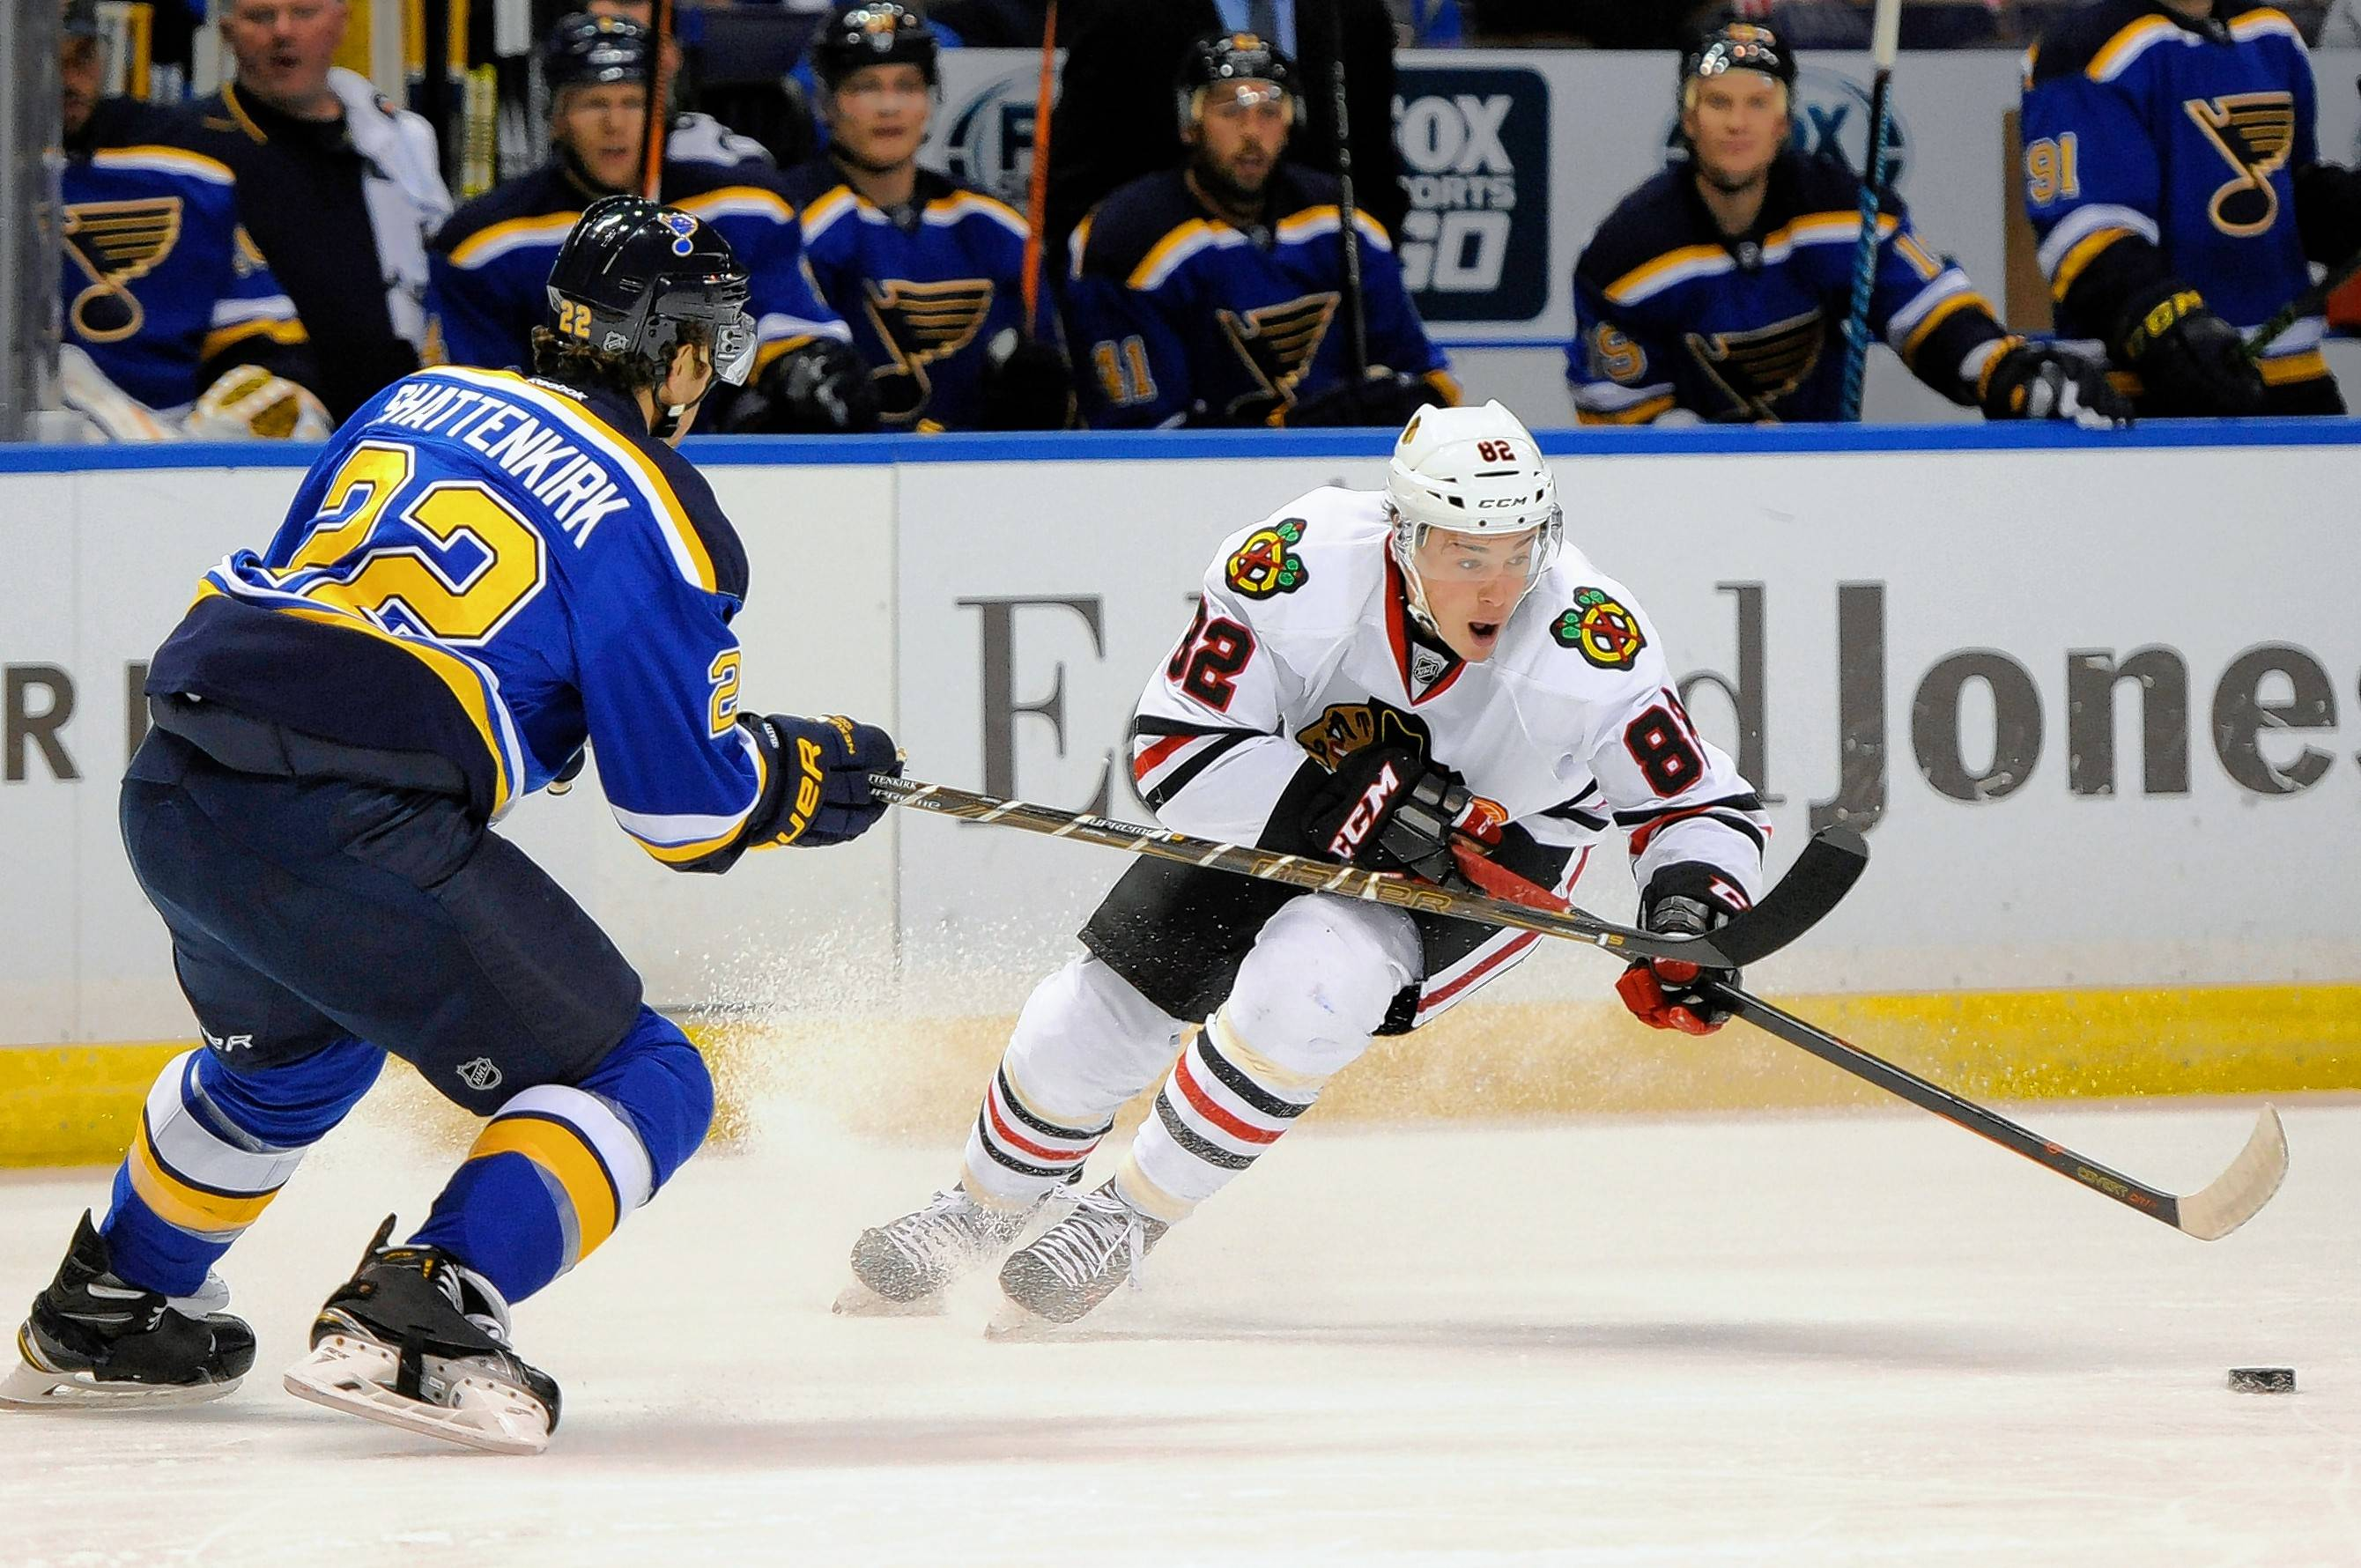 St. Louis Blues' Kevin Shattenkirk (22) and Chicago Blackhawks' Alexandre Fortin (82) reach for the puck during the first period of a preseason NHL hockey game, Oct. 8, 2016, in St. Louis. (AP Photo/Bill Boyce)